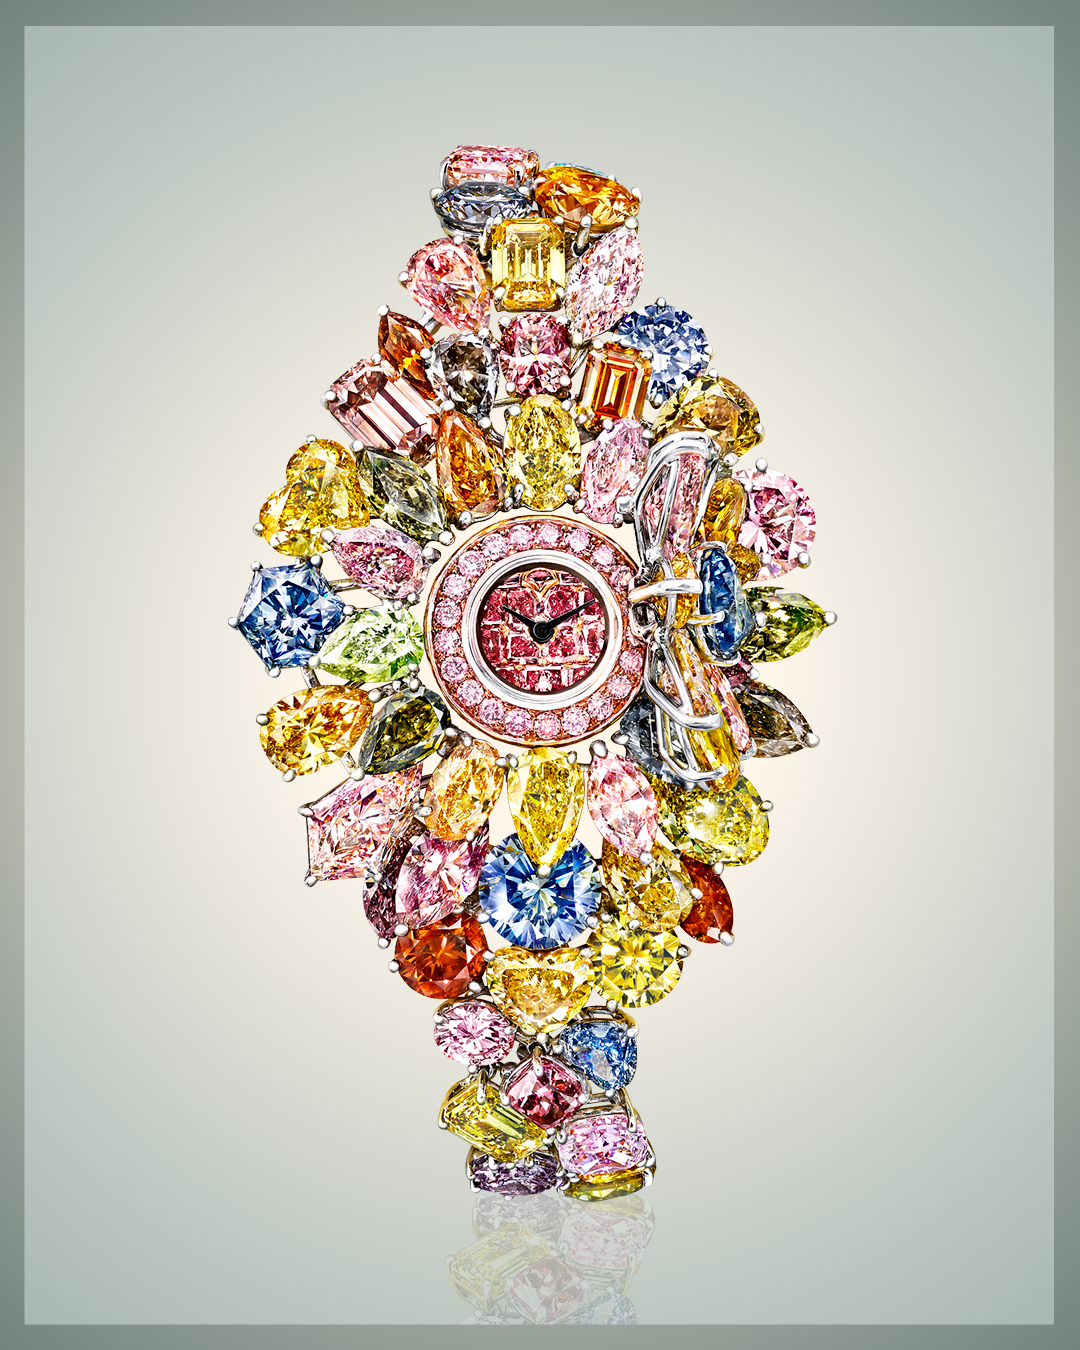 Graff Diamonds Hallucination watch featuring 110 carats worth of colored diamonds including a pink diamond face, and several different shades of blue diamonds, yellow diamonds, orange diamonds